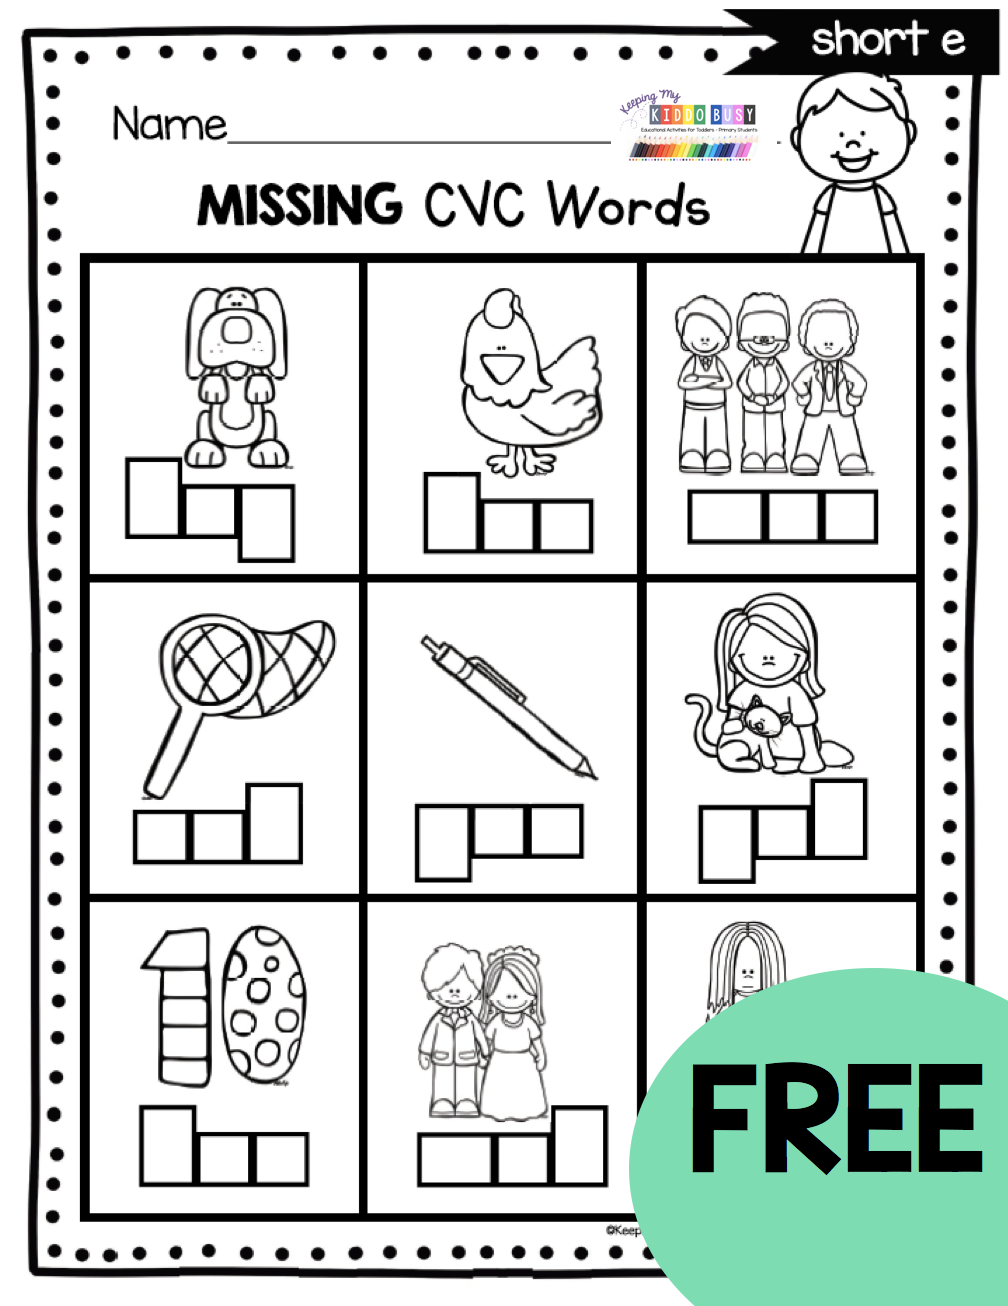 medium resolution of FREE Phonics Worksheets and activities for teaching short vowels CVC words  kindergarten first grade   Cvc words kindergarten